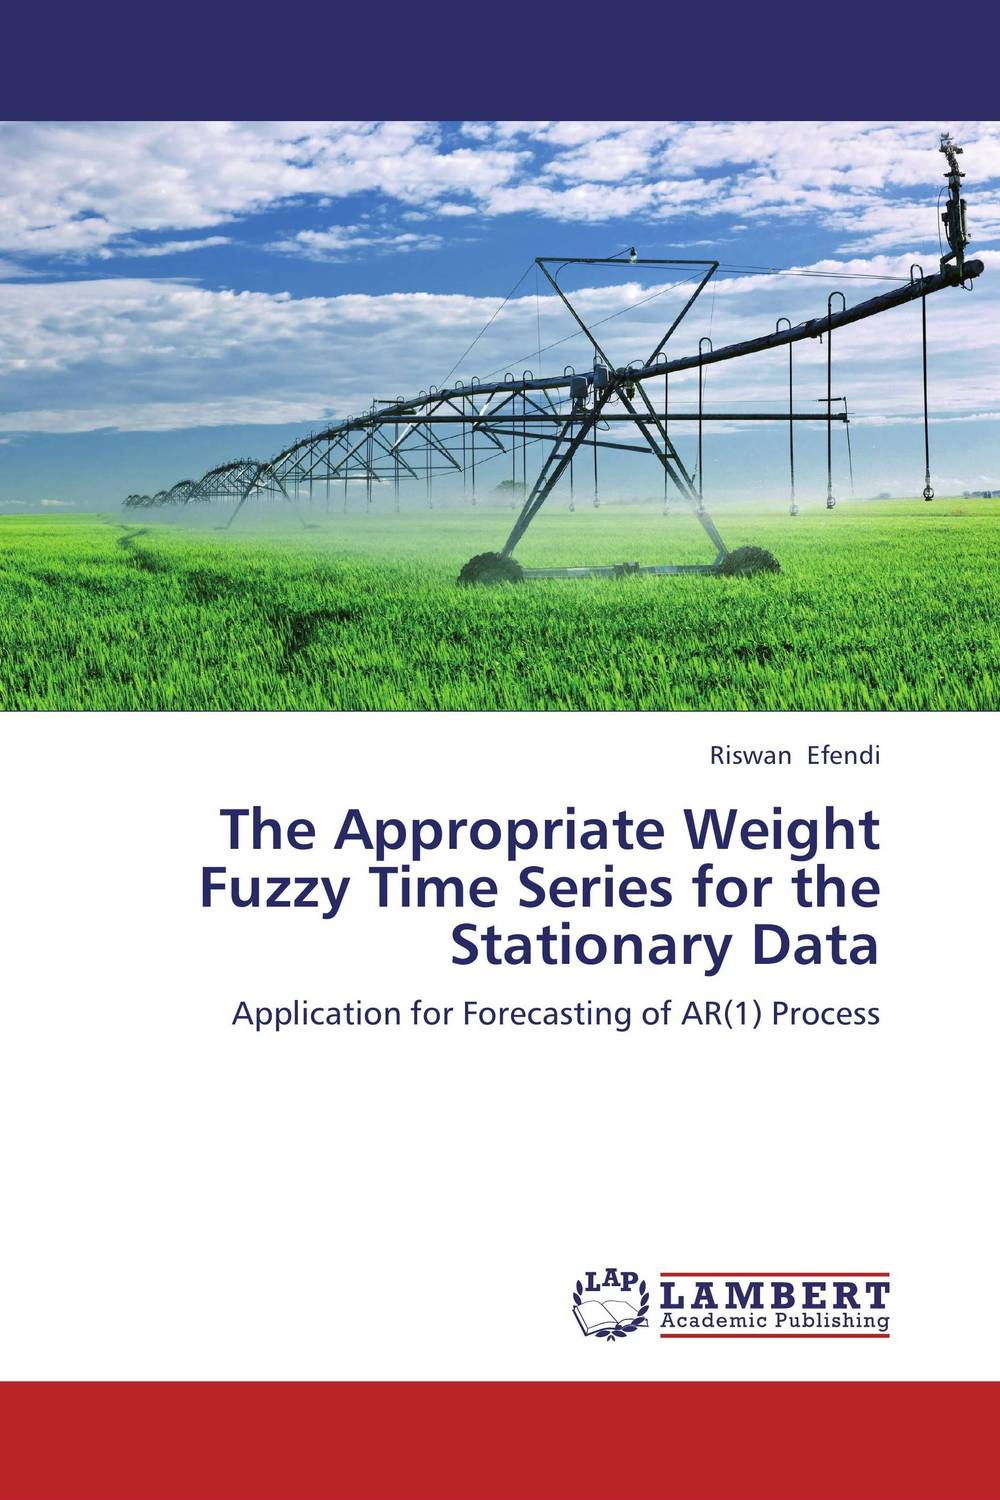 The Appropriate Weight Fuzzy Time Series for the Stationary Data aygun nusrat alasgarova financial risk forecasting using neuro fuzzy approach